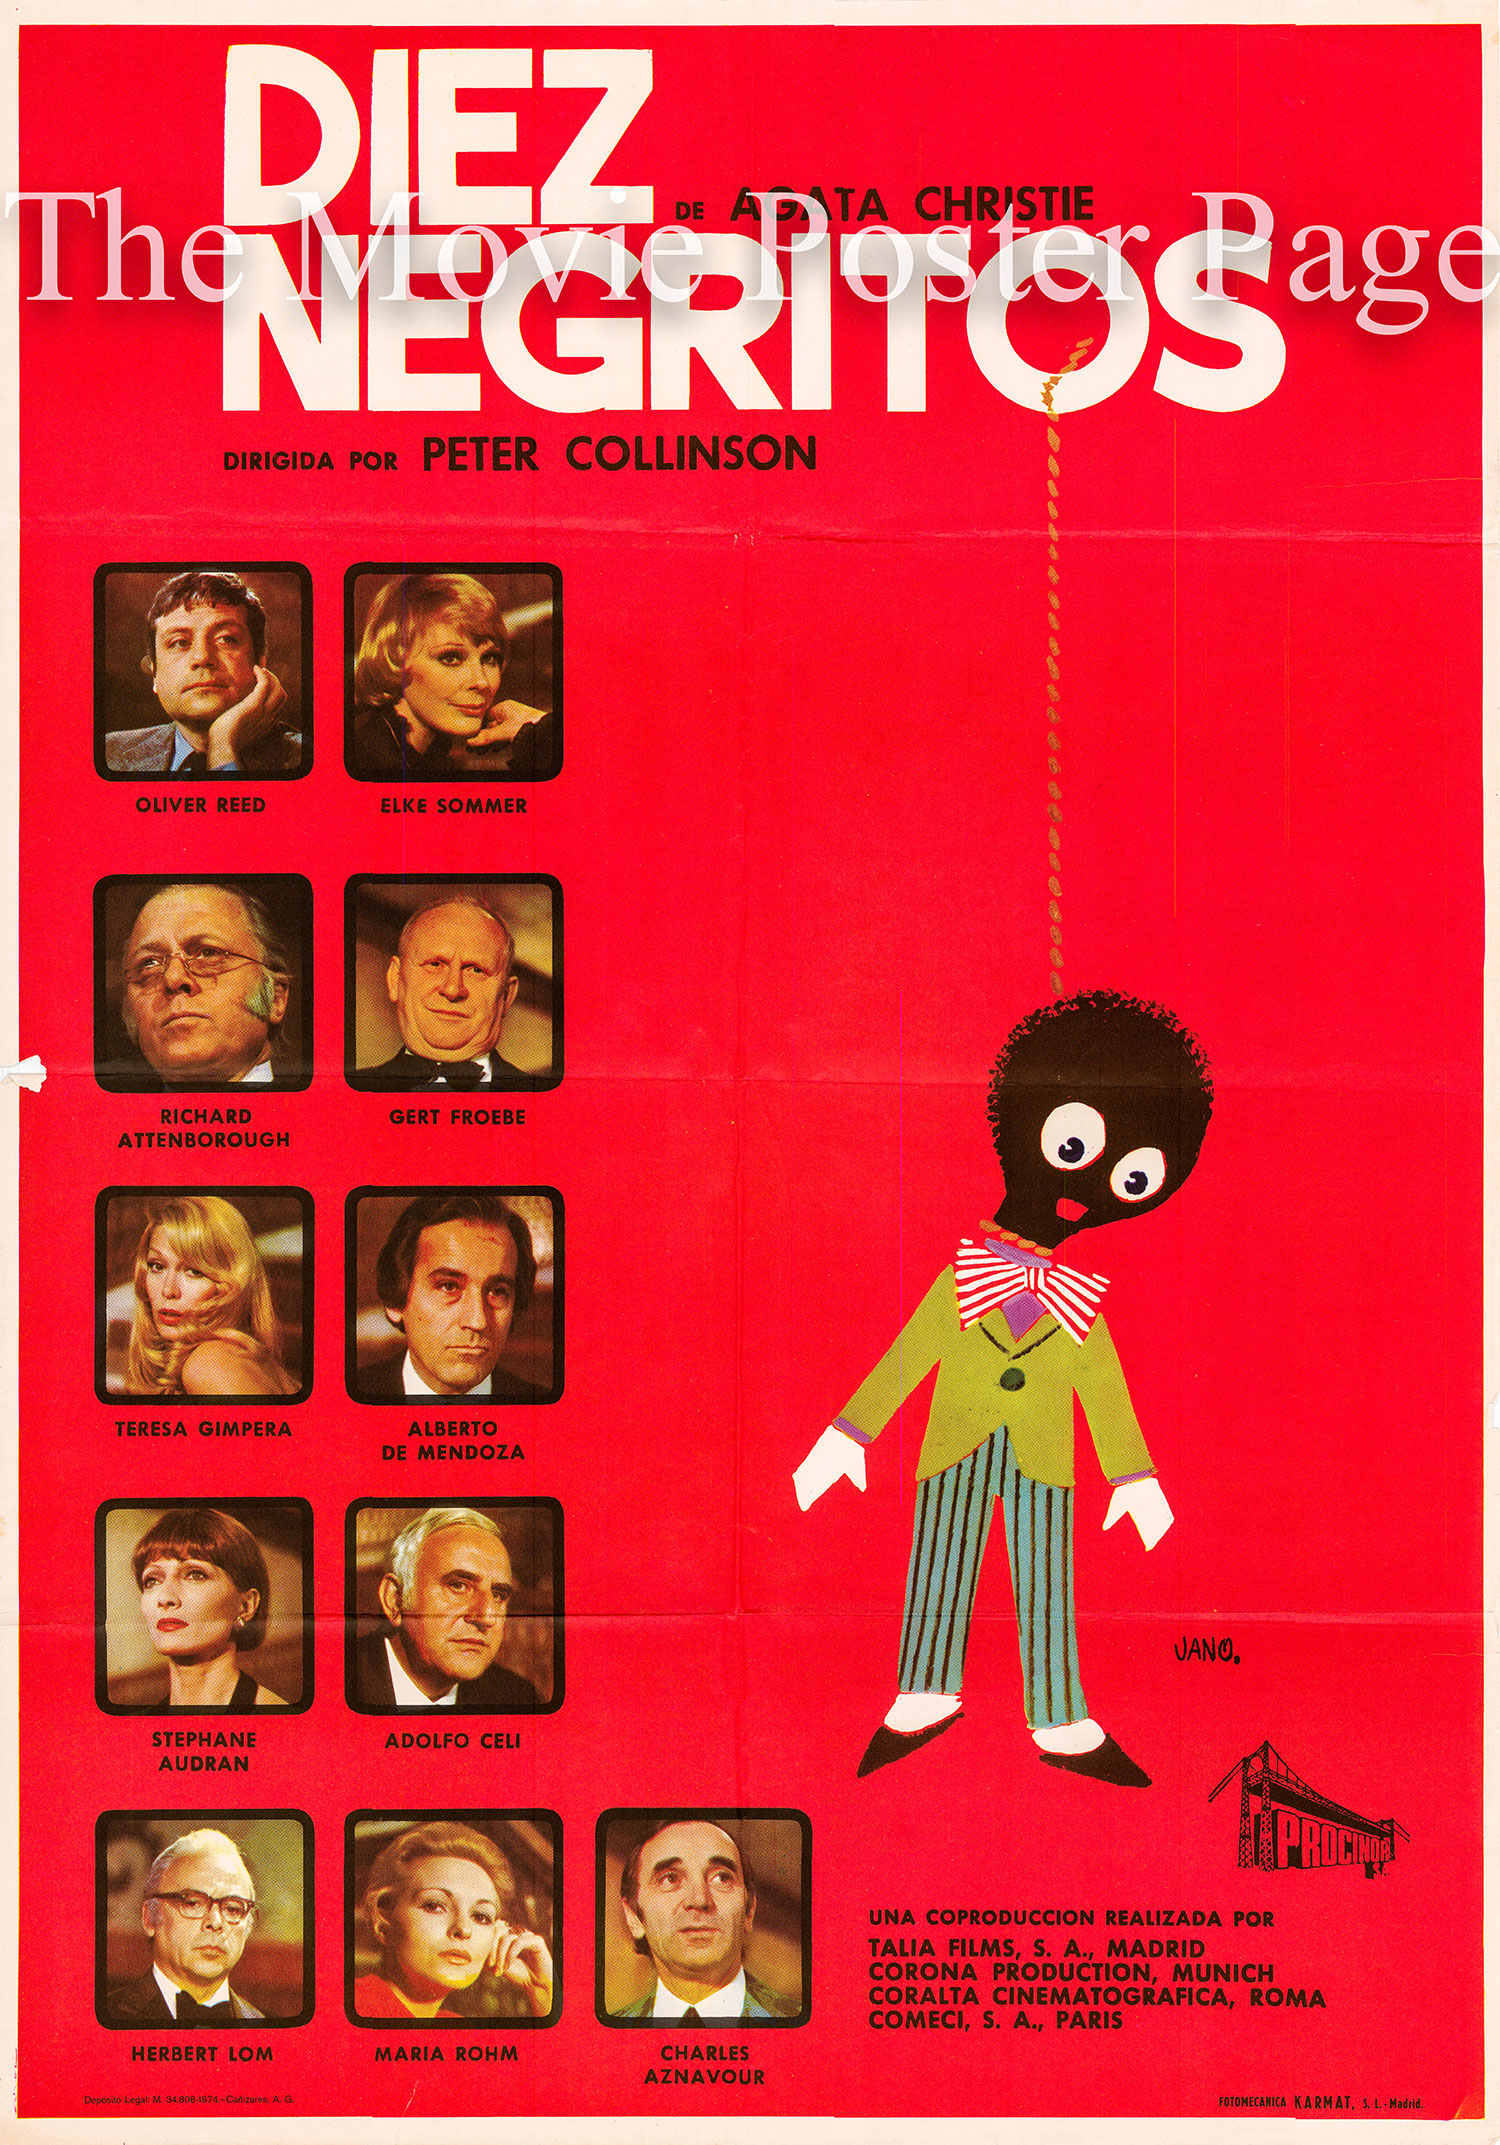 Pictured is a Spanish one-sheet promotional poster for the 1974 Peter Collinson film And Then There Were None starring Oliver Reed as Hugh Lombard.